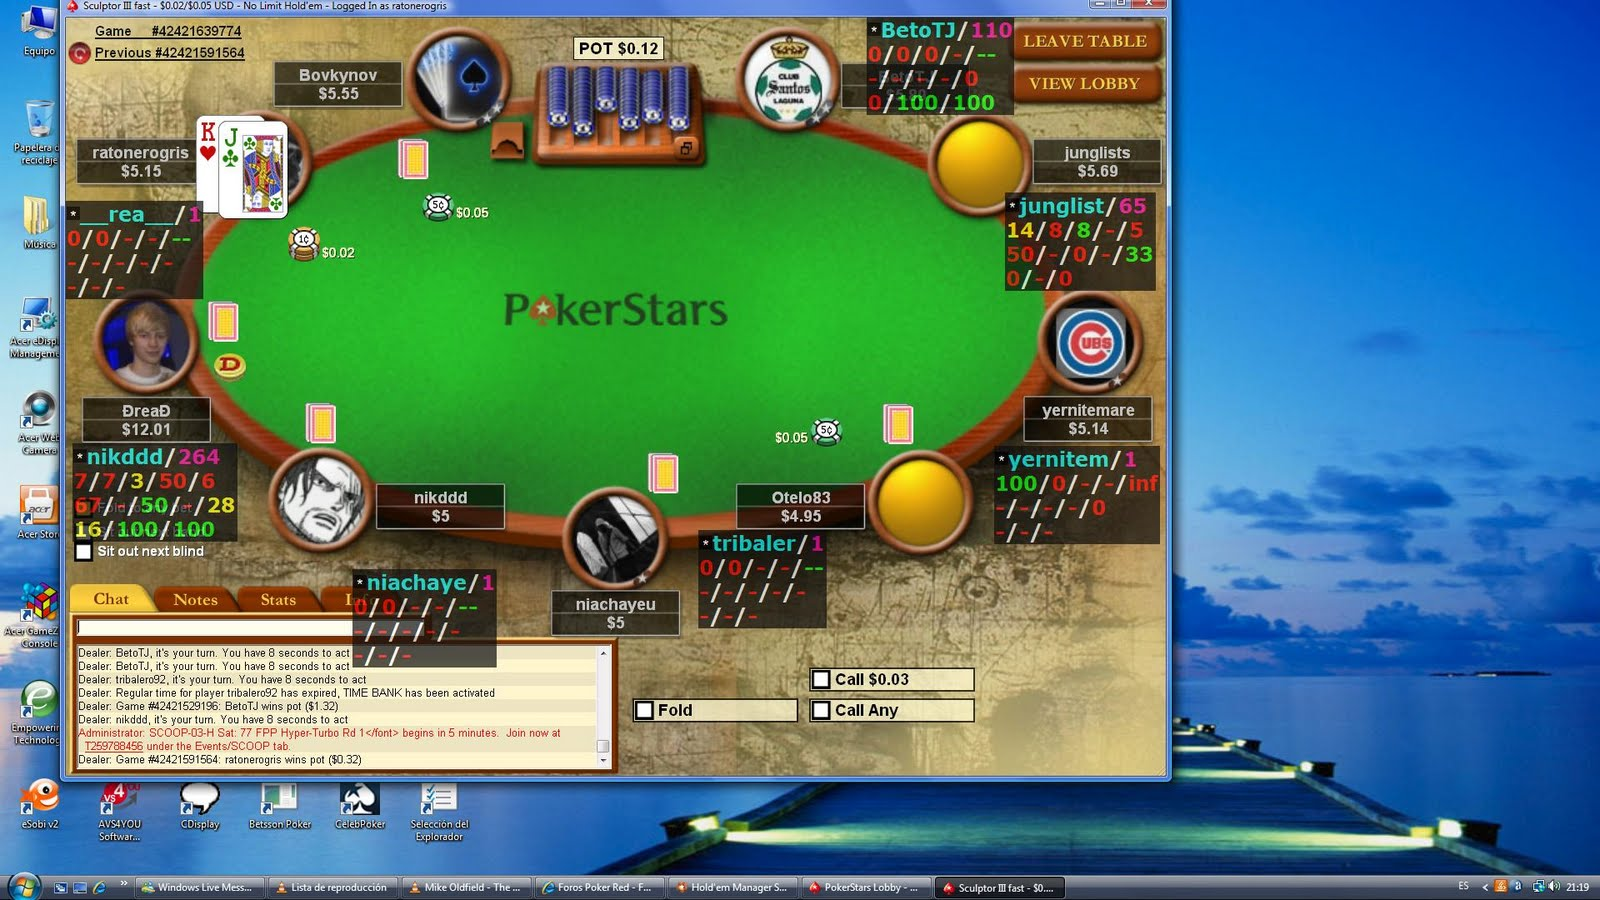 Is holdem manager legal on pokerstars